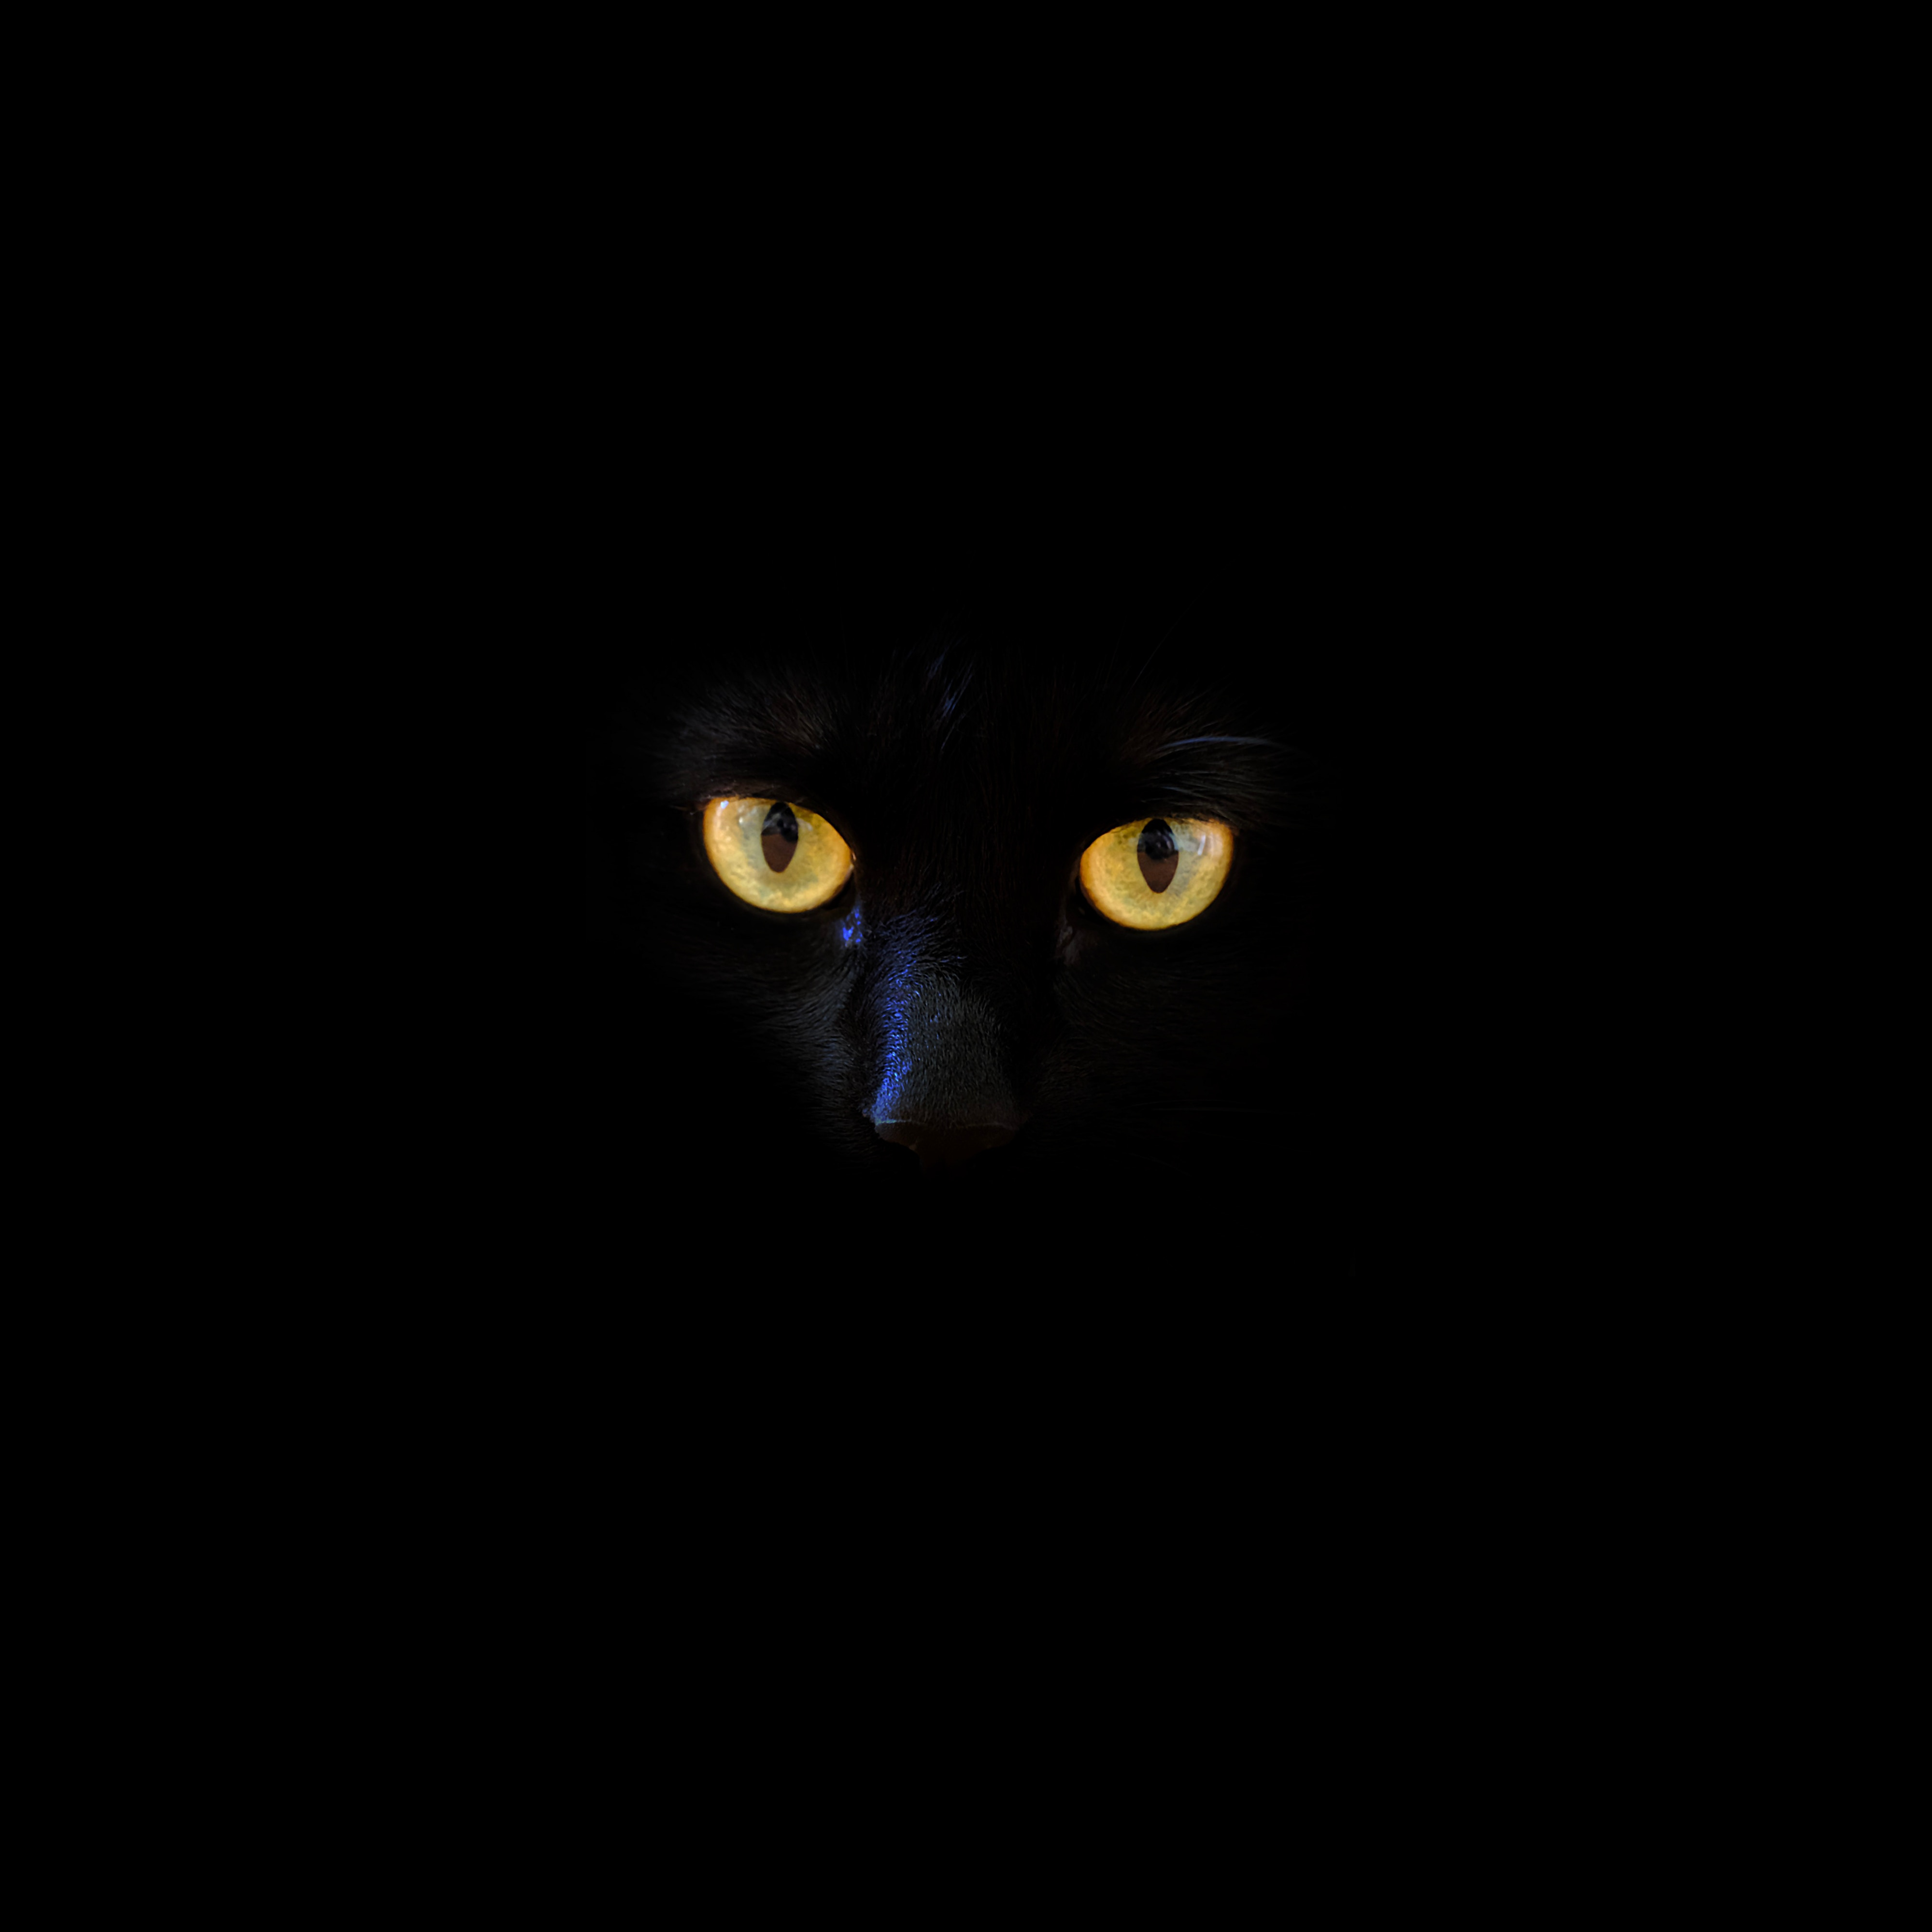 78528 download wallpaper Cat, Black Cat, Eyes, Darkness screensavers and pictures for free